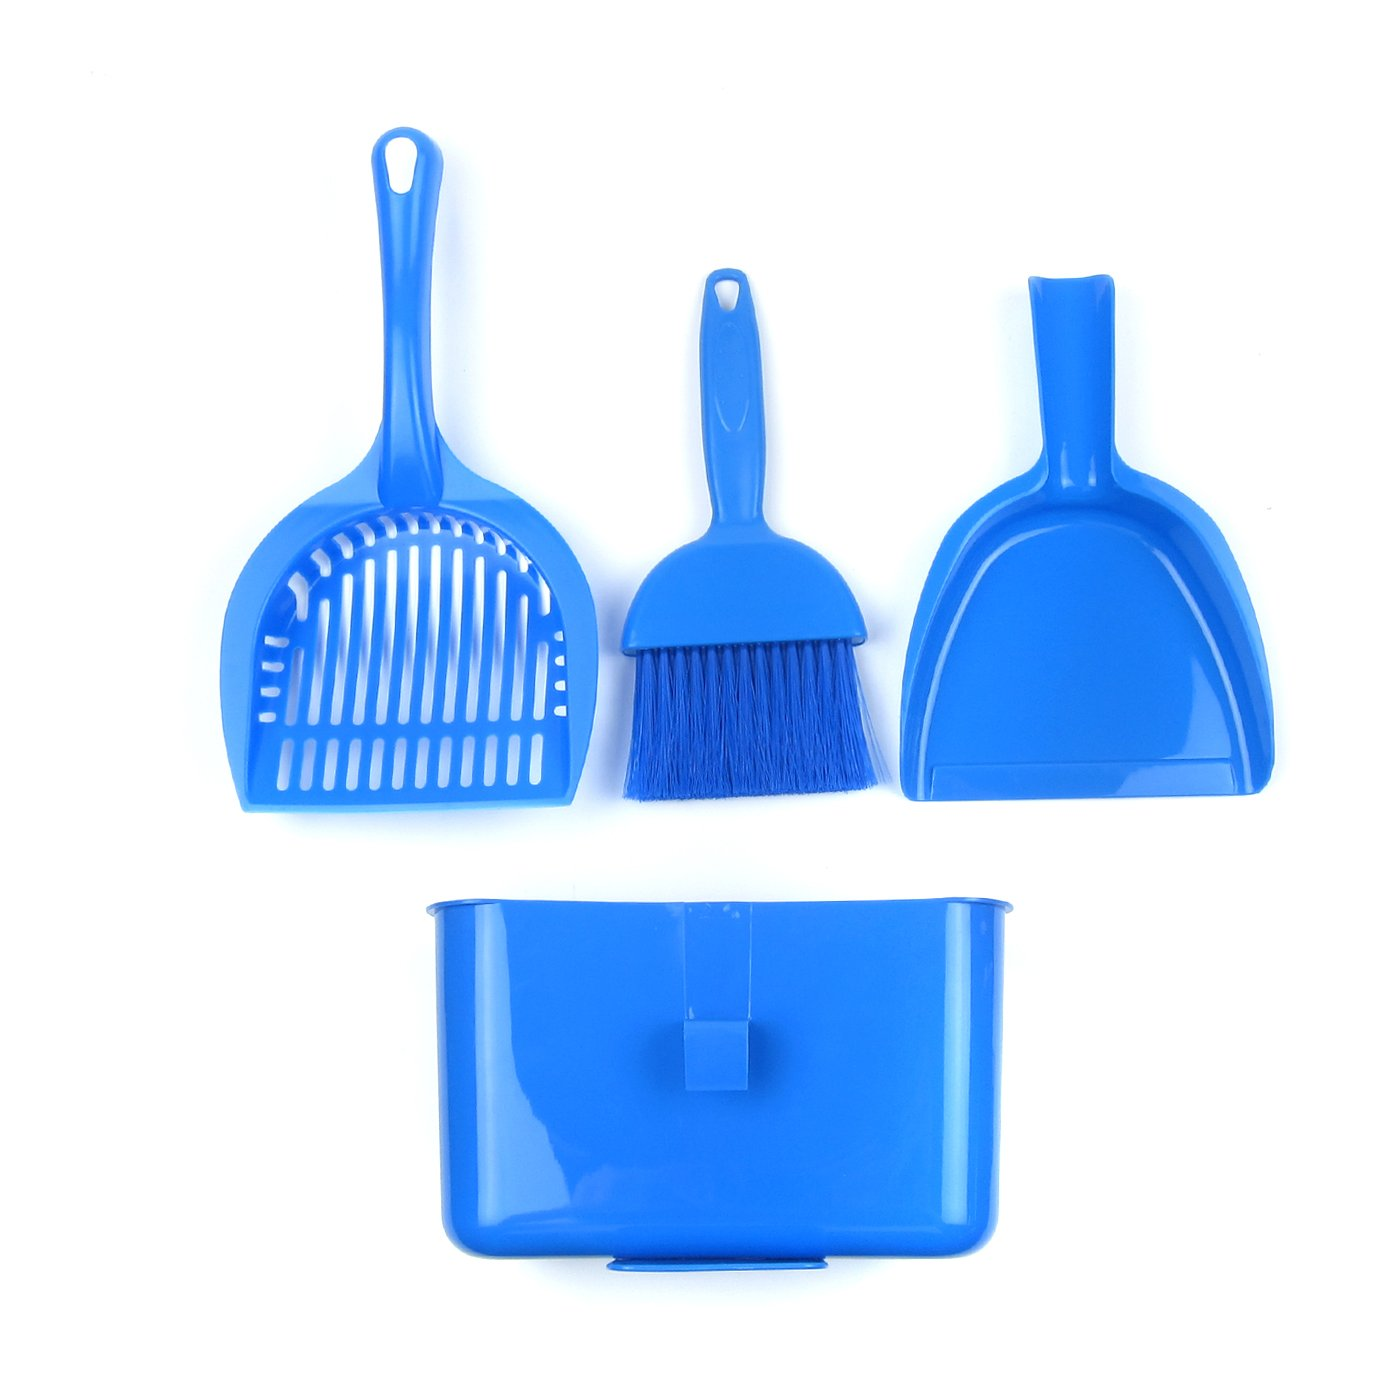 Alfie Pet by Petoga Couture - Aaron Cat or Small Animal Cleaning Brush Set - Color Blue by Alfie (Image #2)